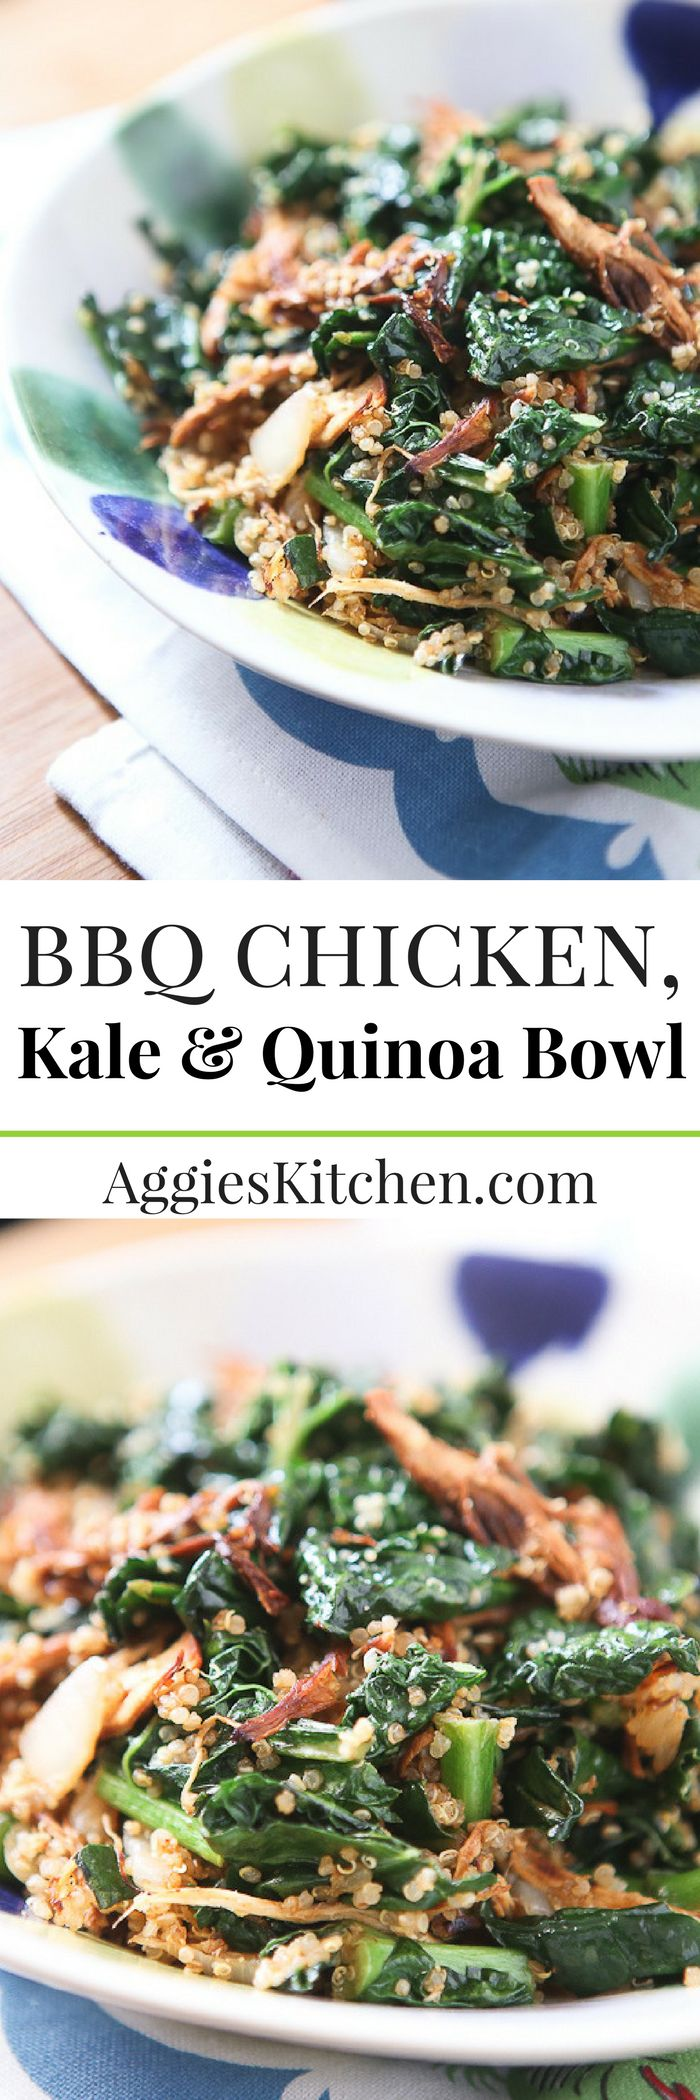 BBQ Chicken and Kale Quinoa Bowl - this healthy recipe comes together quickly and easily, a family favorite!